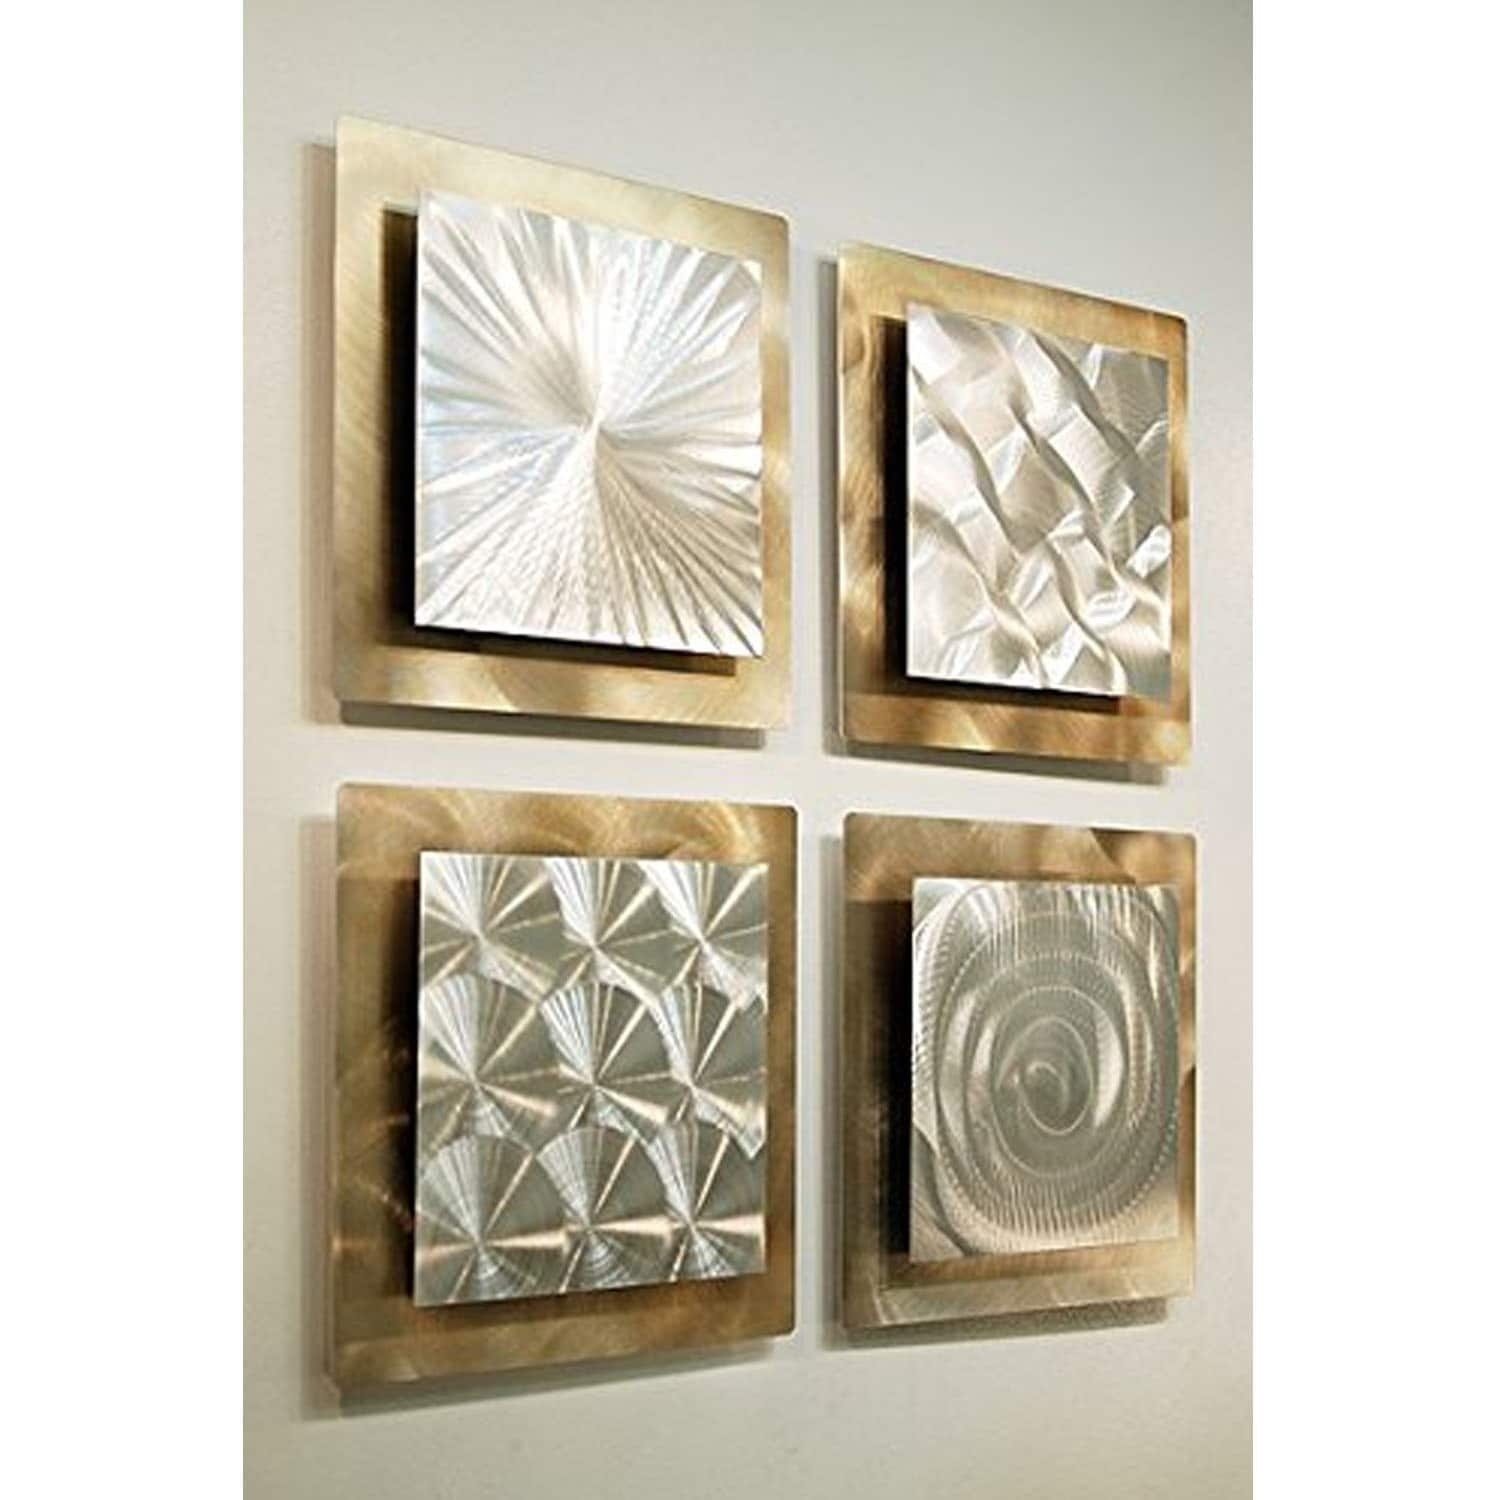 Statements2000 Set Of 4 Gold / Silver Metal Wall Art Accentjon Throughout 2018 Rectangular Wall Accents (Gallery 12 of 15)